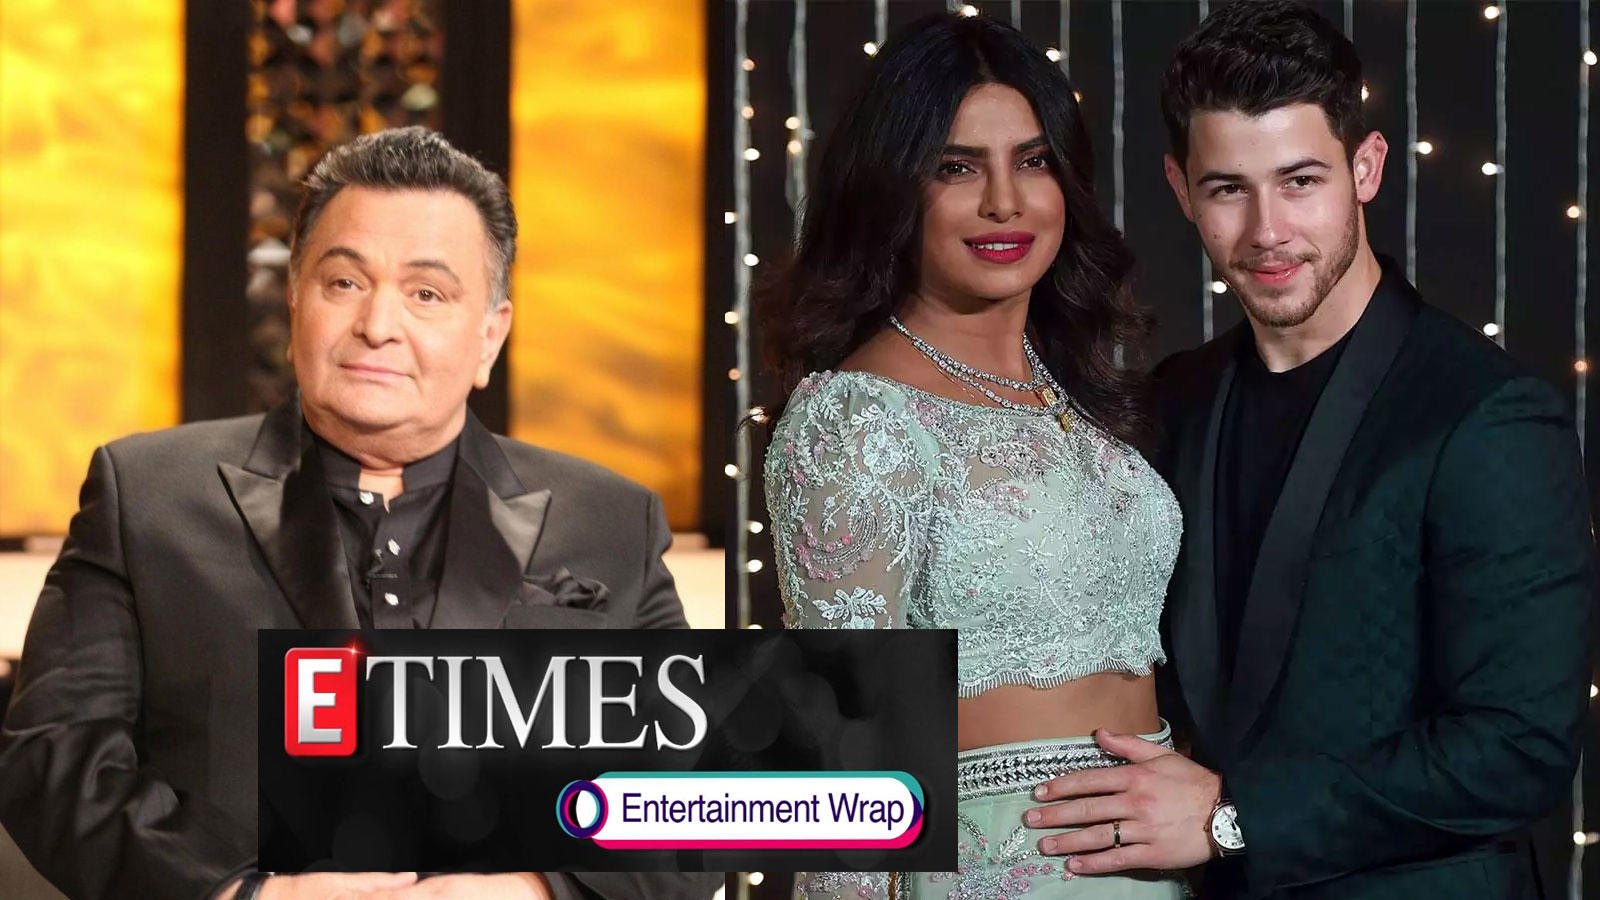 coronavirus-lockdown-rishi-kapoor-suggests-government-to-open-all-licensed-liquor-stores-priyanka-chopra-opens-up-on-starting-a-family-with-nick-jonas-and-more-